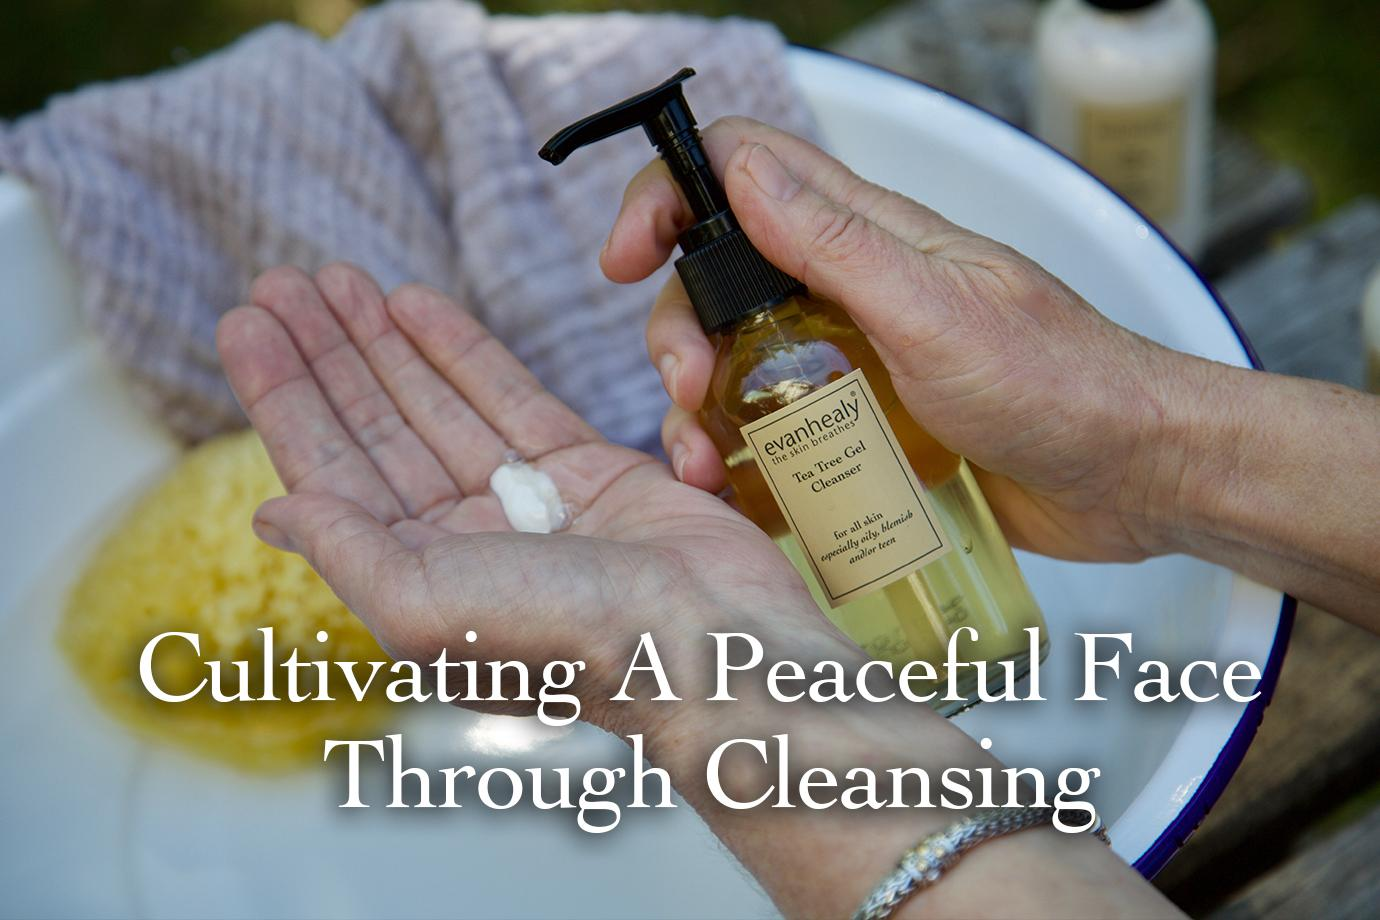 Cultivating A Peaceful Face Through Cleansing